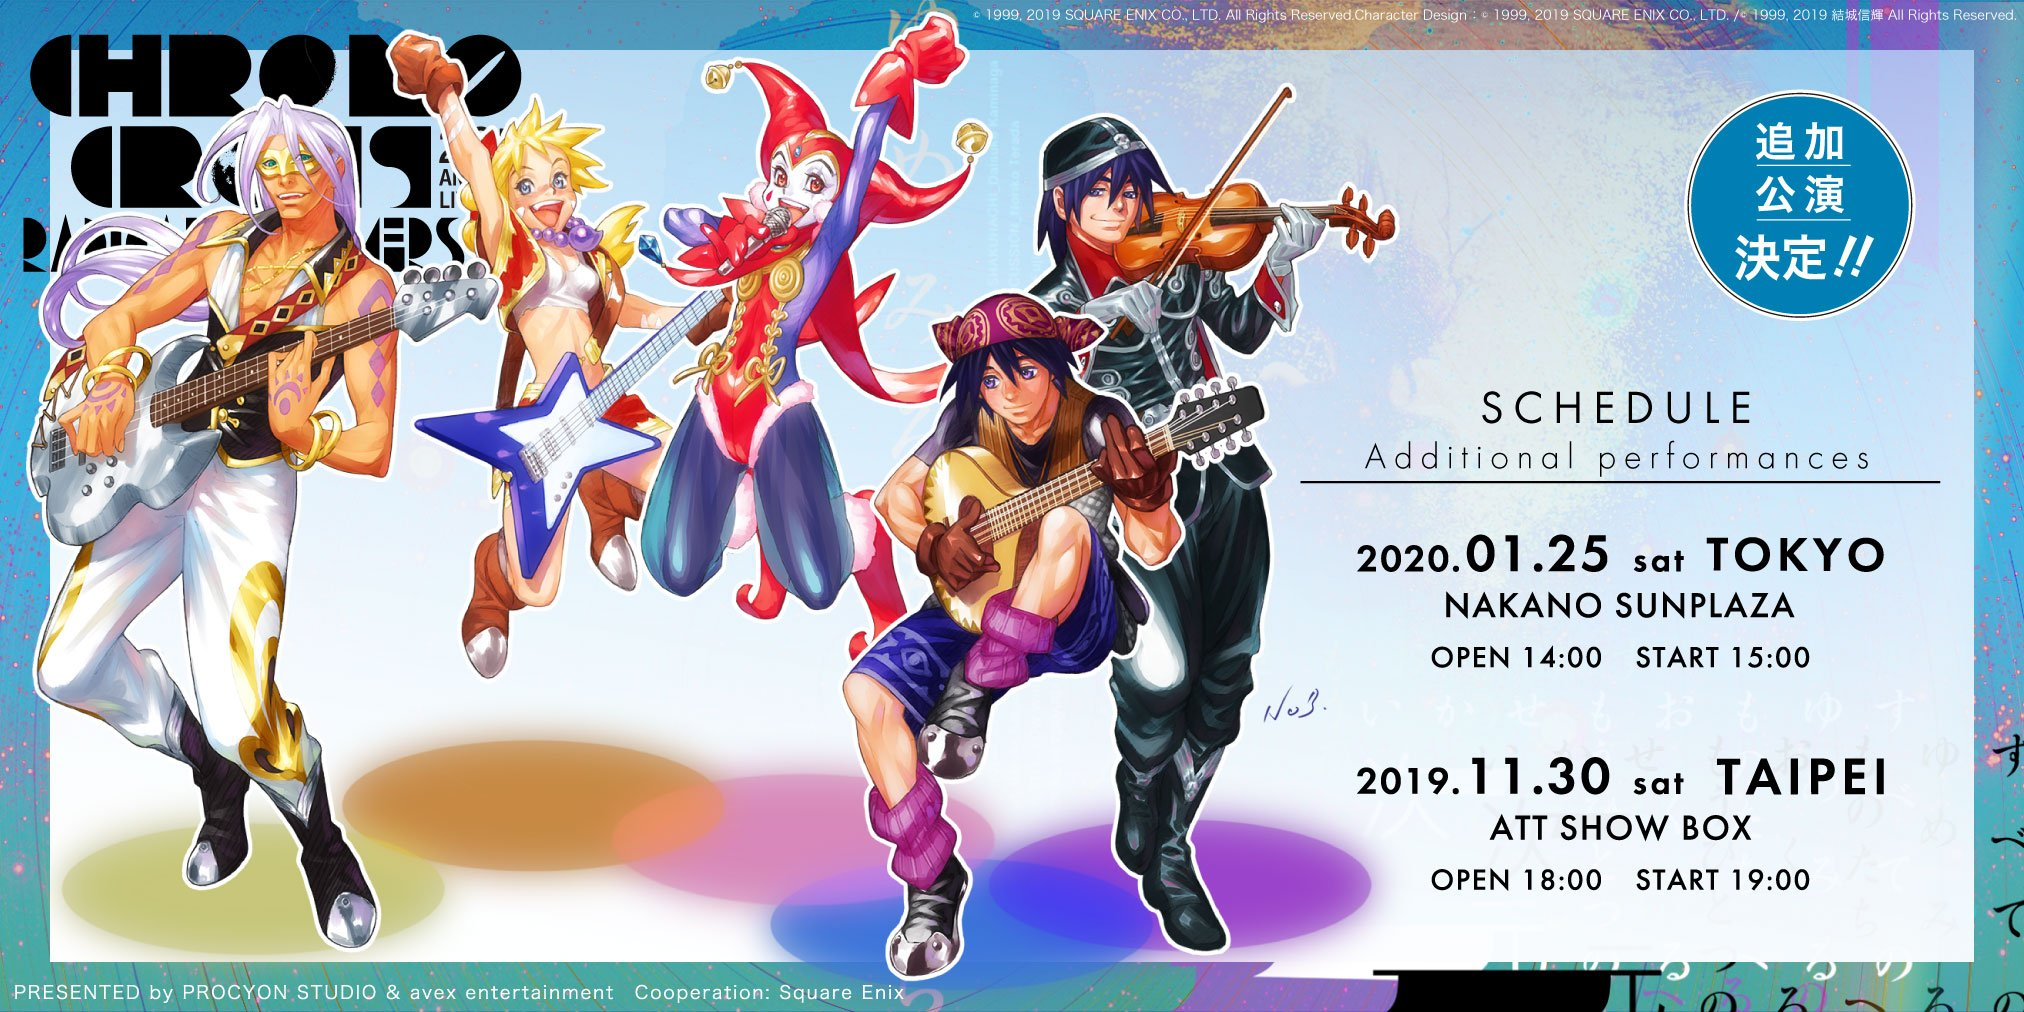 CHRONO CROSS LIVE 追加公演